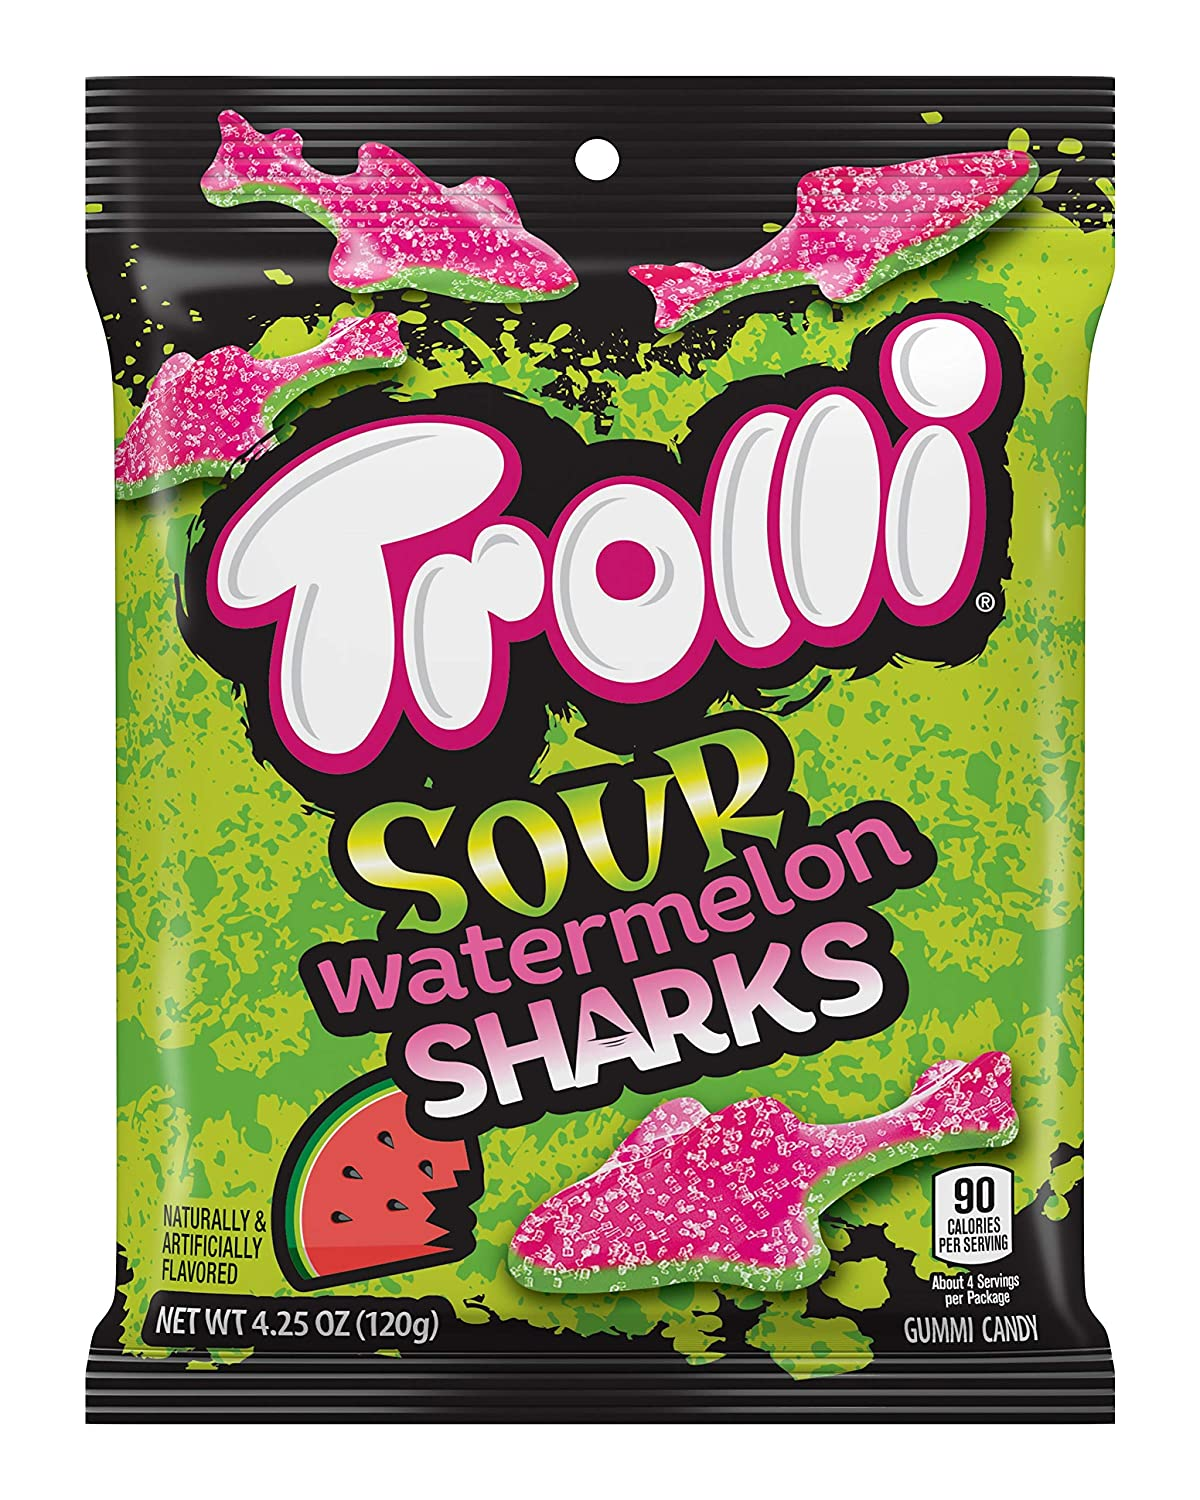 b11b616e4e07c Amazon.com : Trolli Sour Watermelon Sharks Gummy Candy, 4.25 Ounce ...